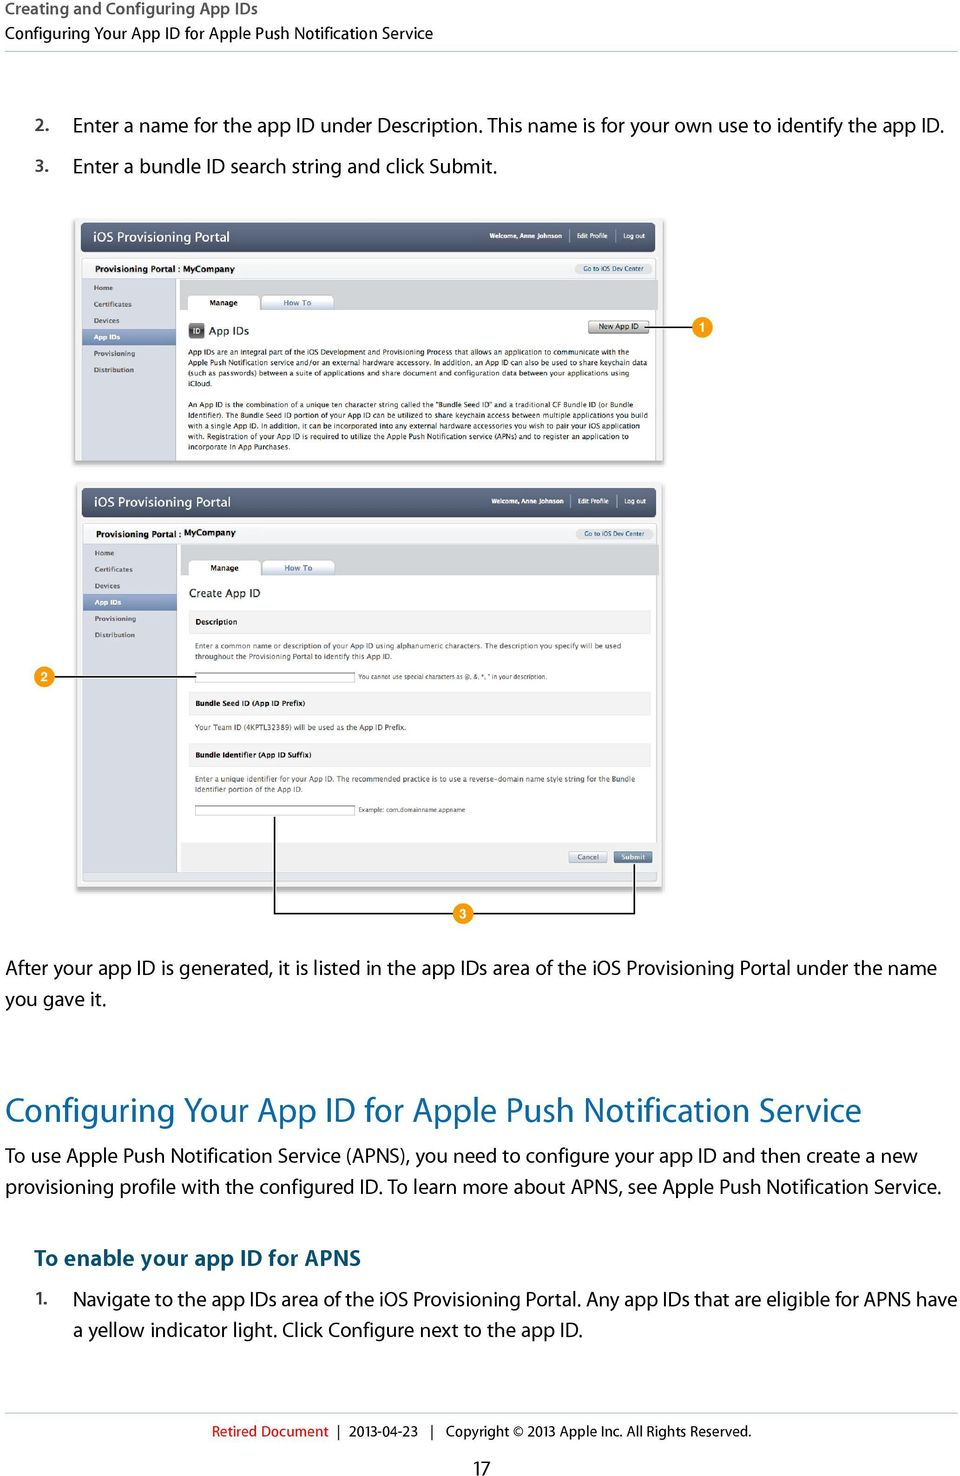 Configuring Your App ID for Apple Push Notification Service To use Apple Push Notification Service (APNS), you need to configure your app ID and then create a new provisioning profile with the